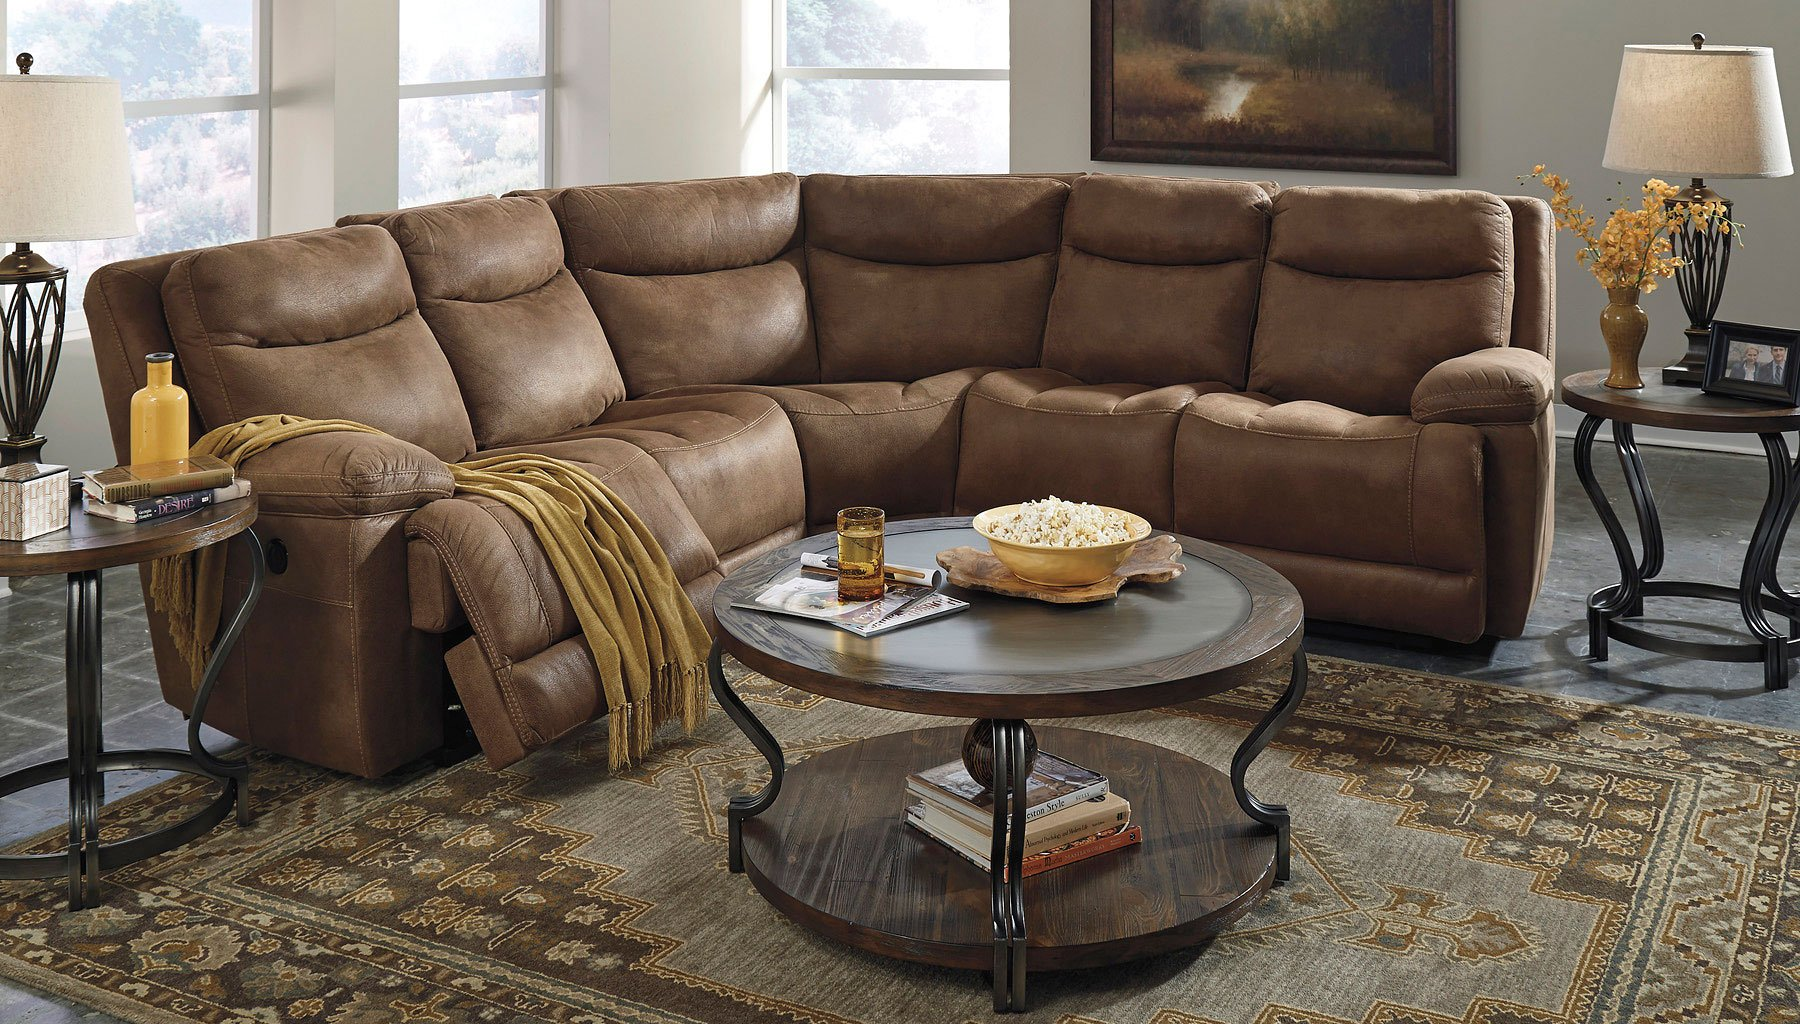 Valto Saddle Modular Reclining Sectional Set By Signature Design Ashley Furniturepick